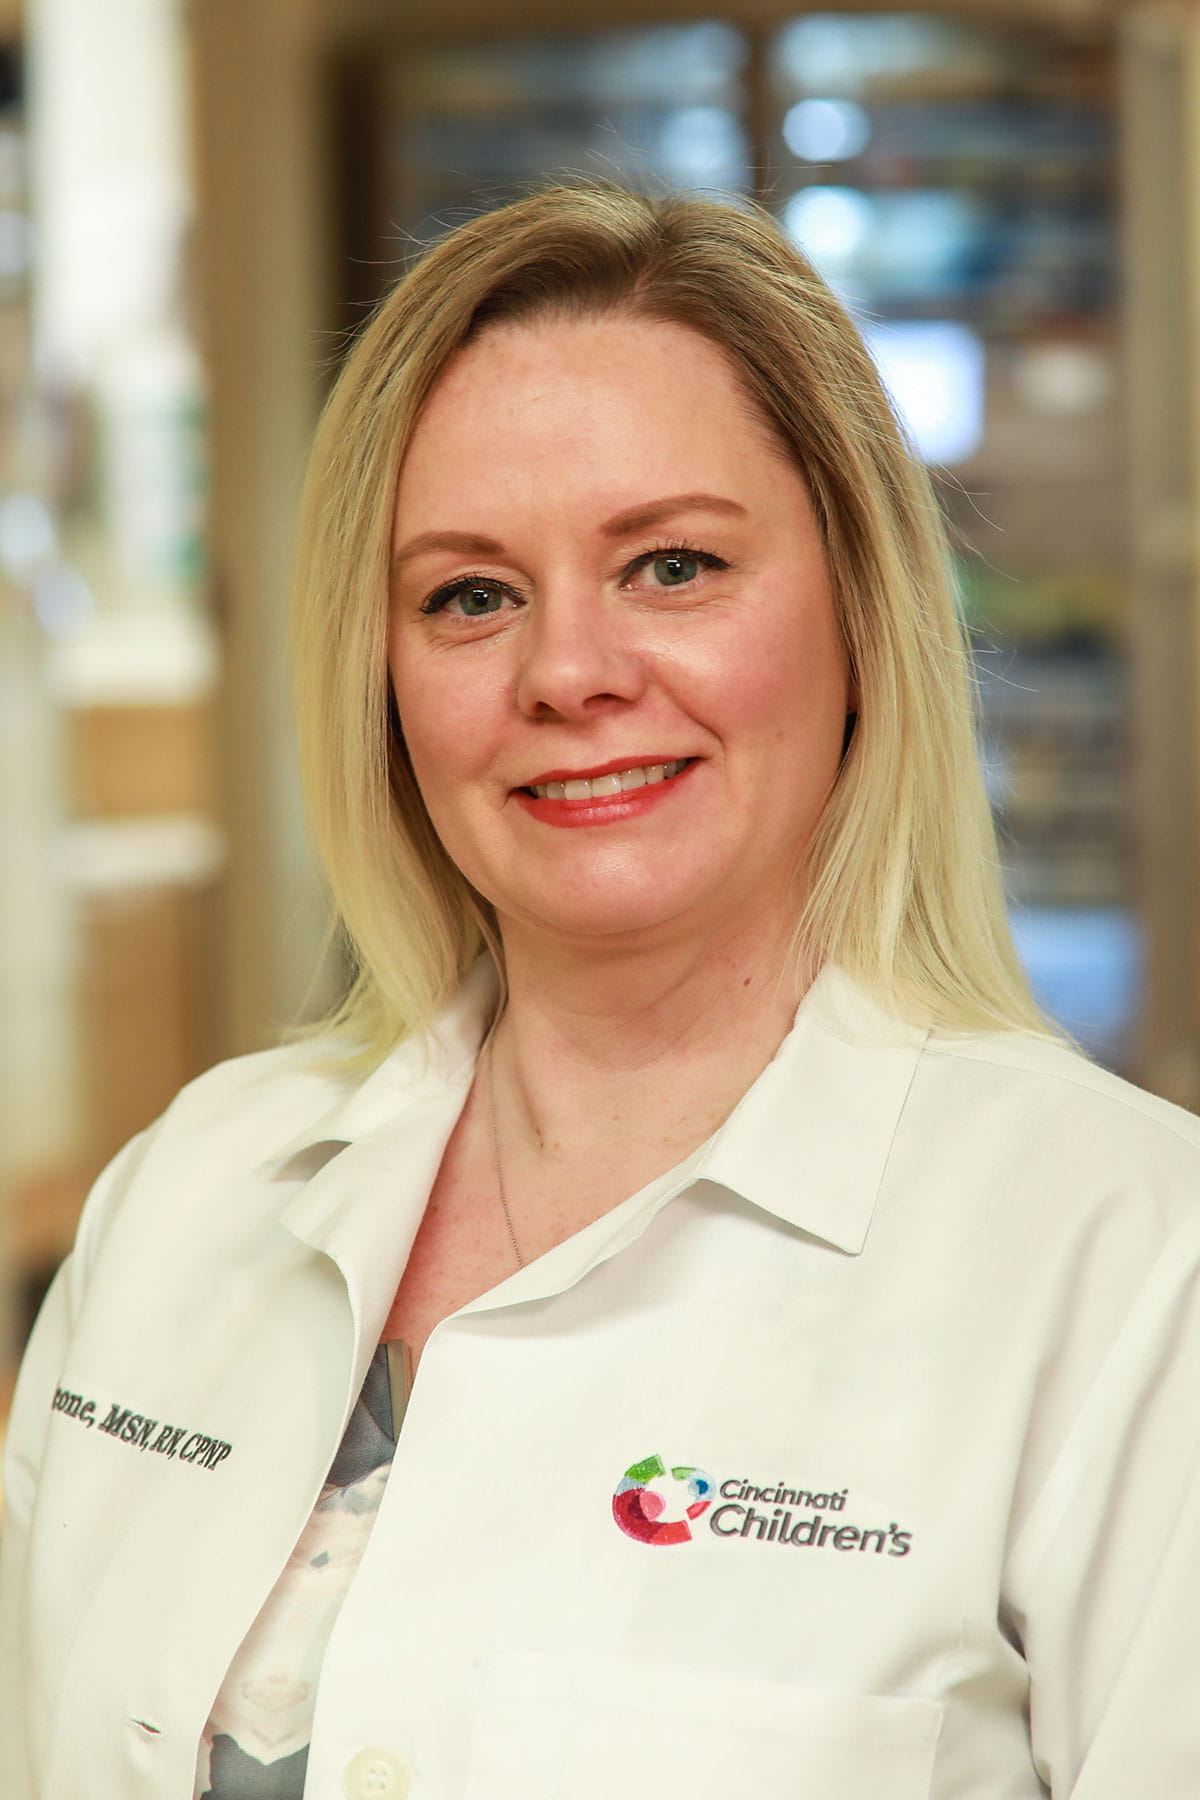 Kelly S. Falcone, RN, MSN, CPNP